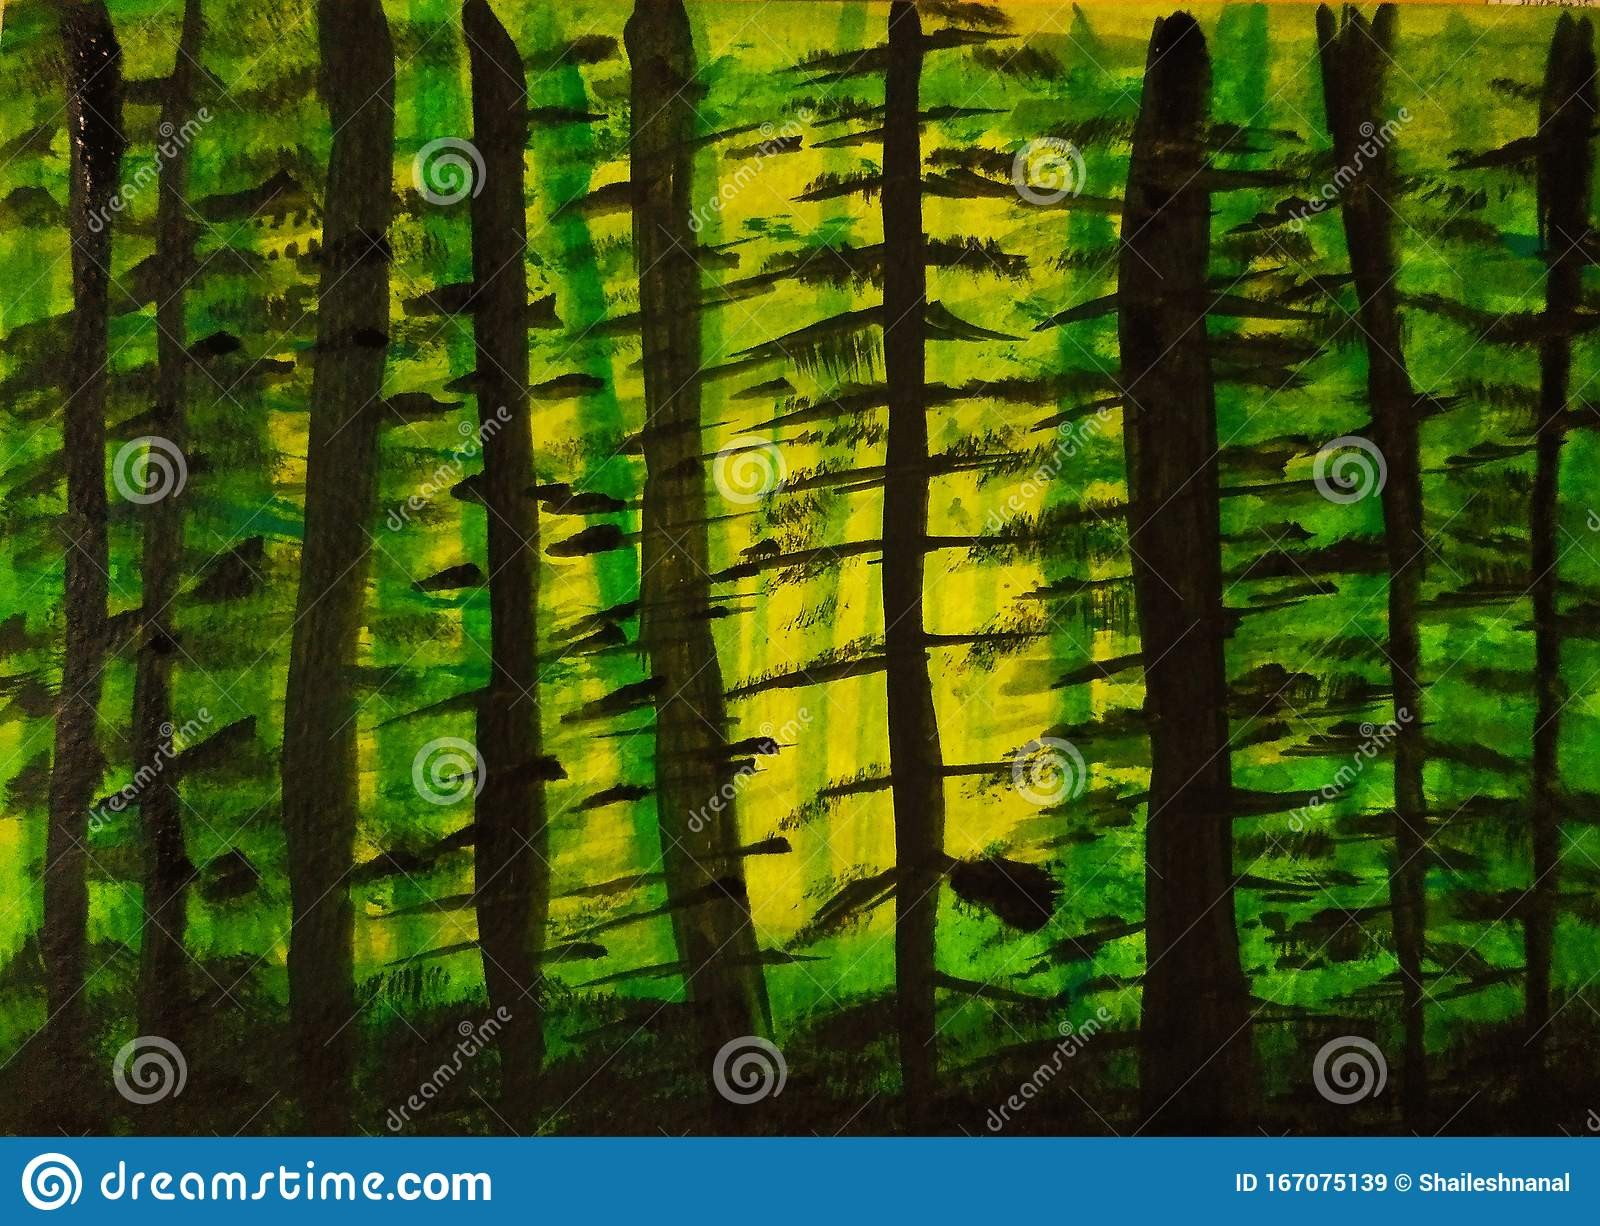 2.e drawing grass dense watercolor the grass is done either on the bg2/tree layer or bg 1. Dense Forest Stock Illustration Illustration Of Jungle 167075139